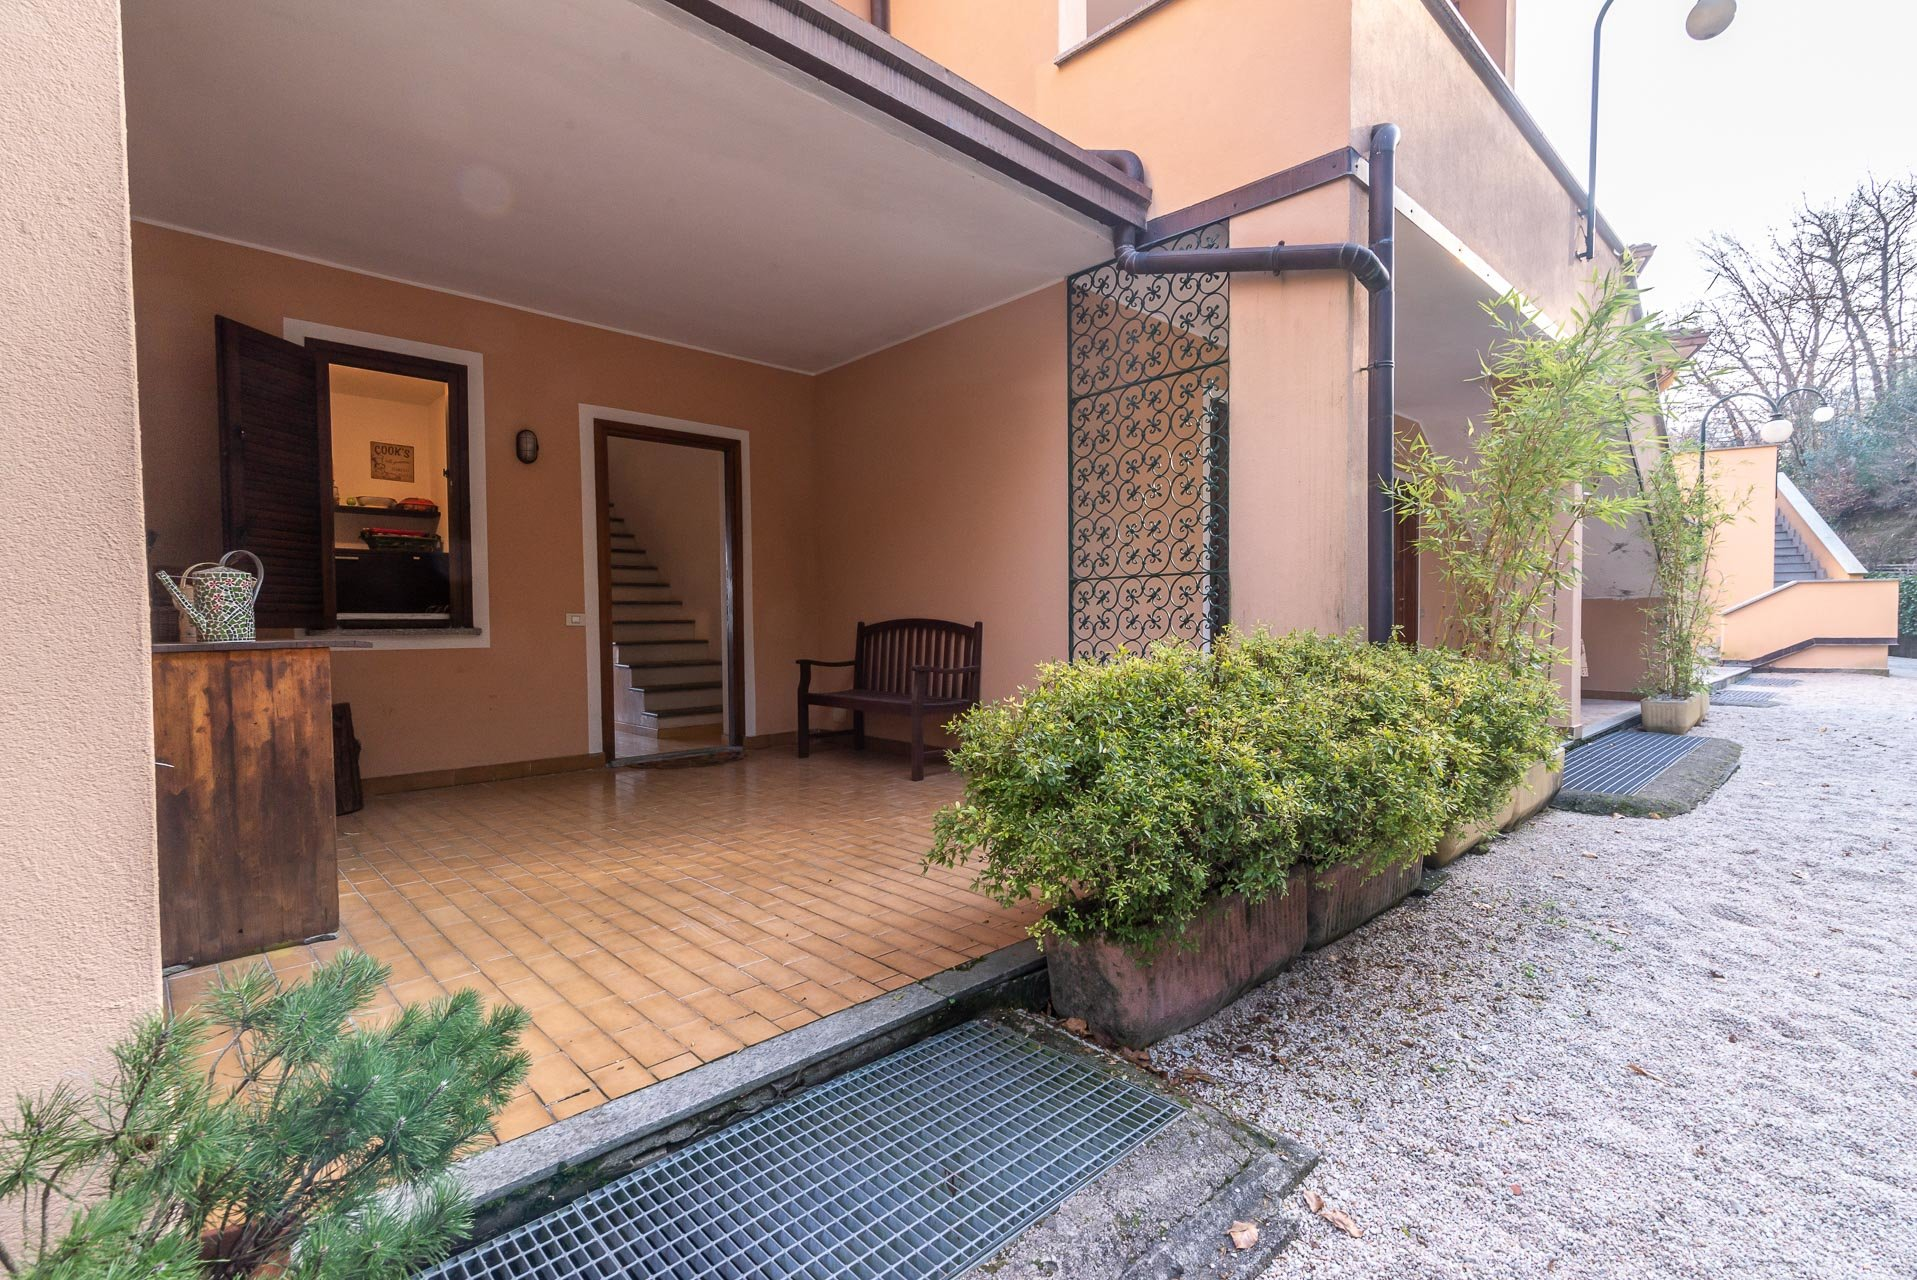 Apartment for sale in Stresa in a residence - entrance patio